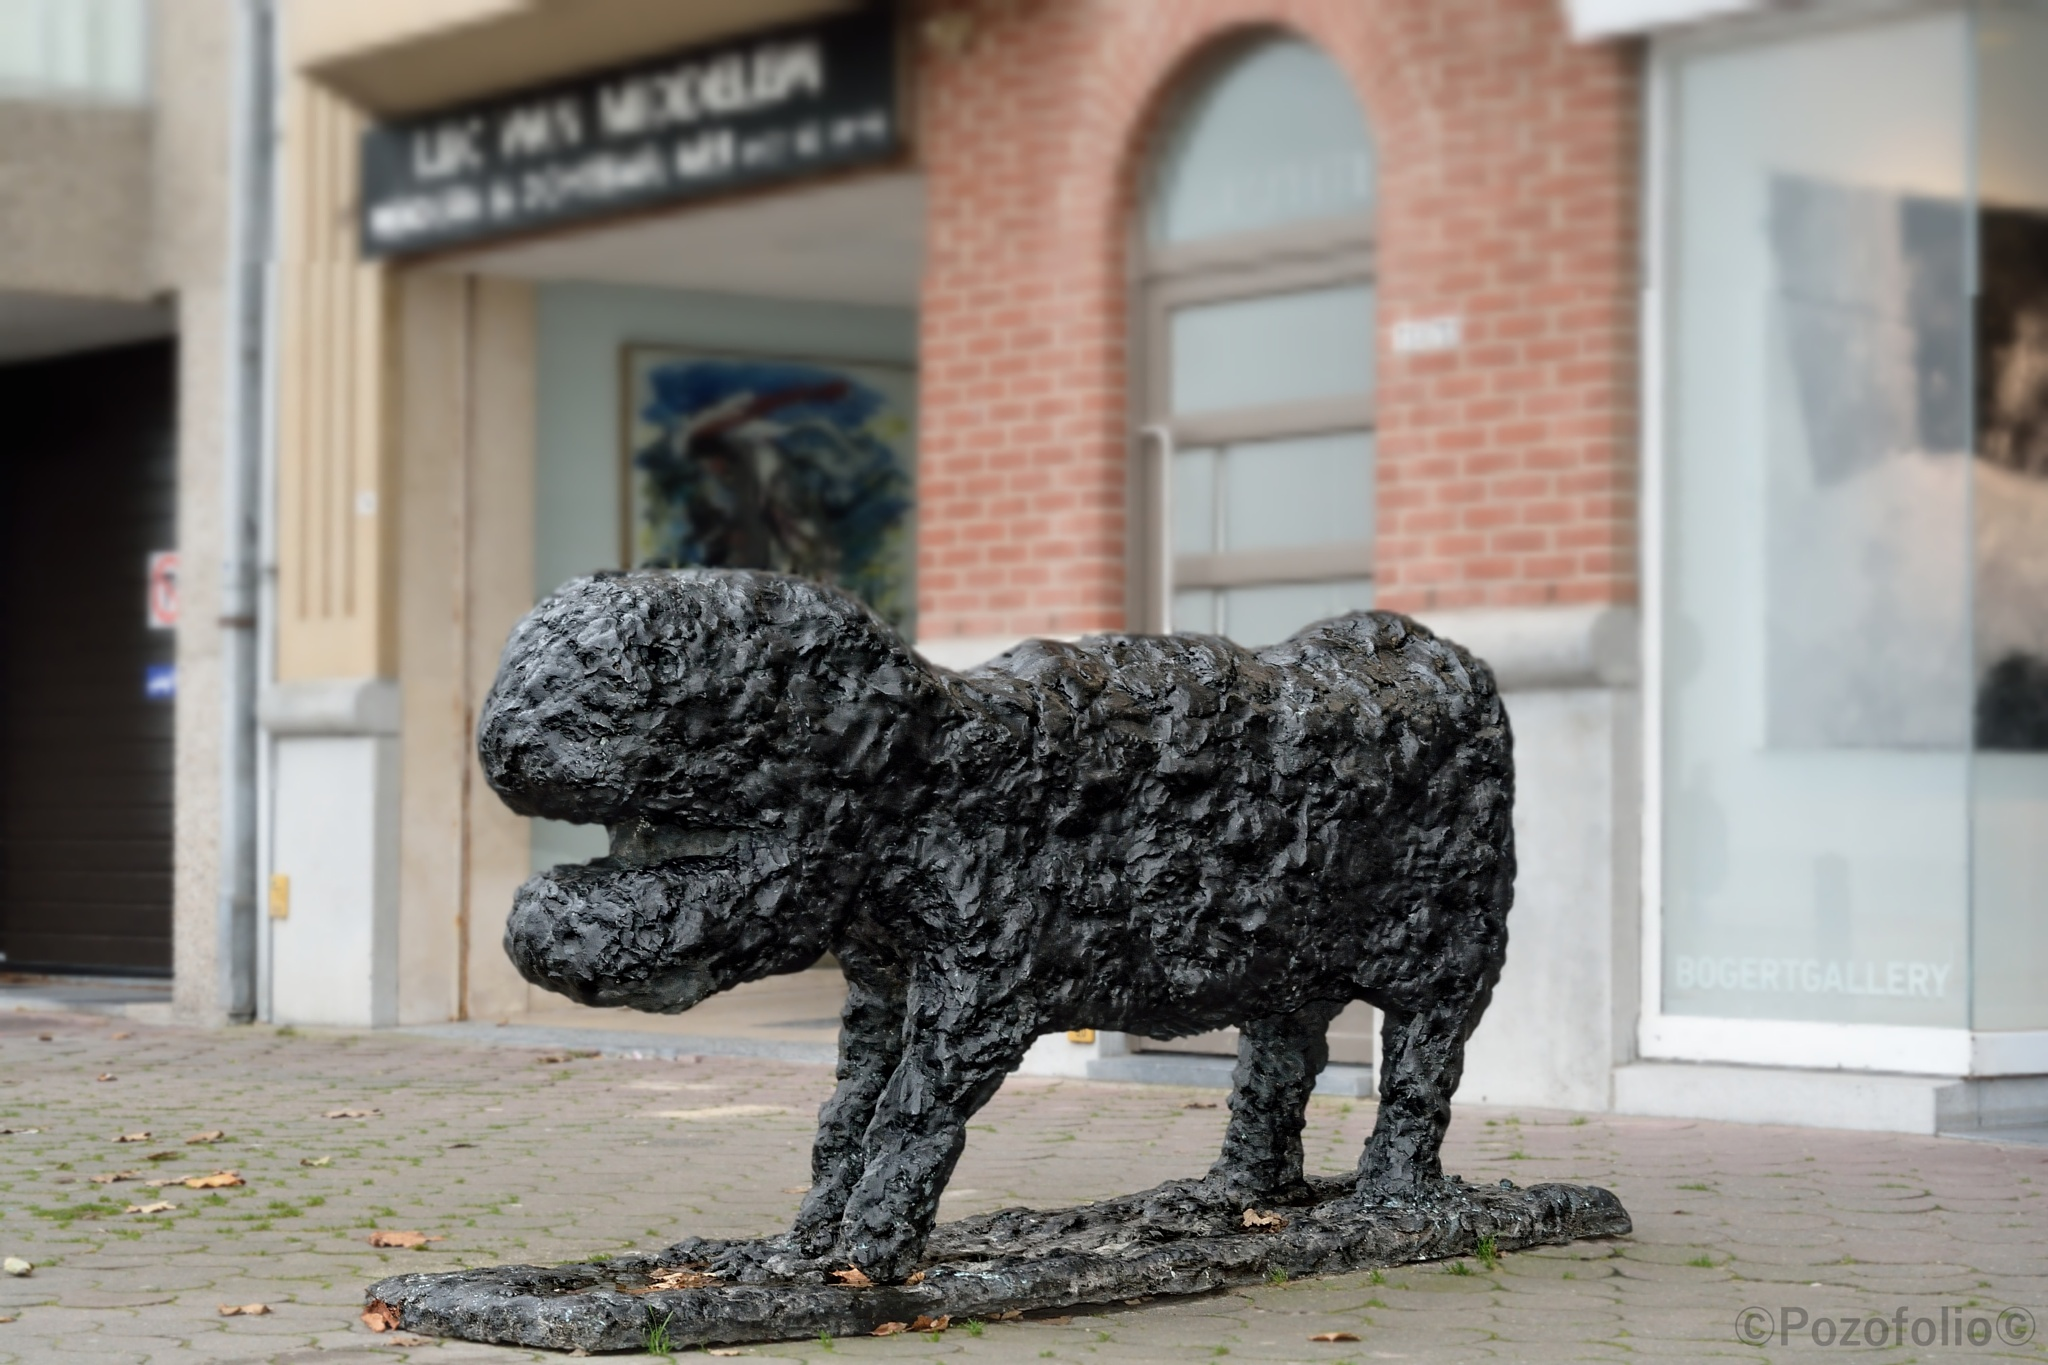 a dog sculpture by Pozofolio